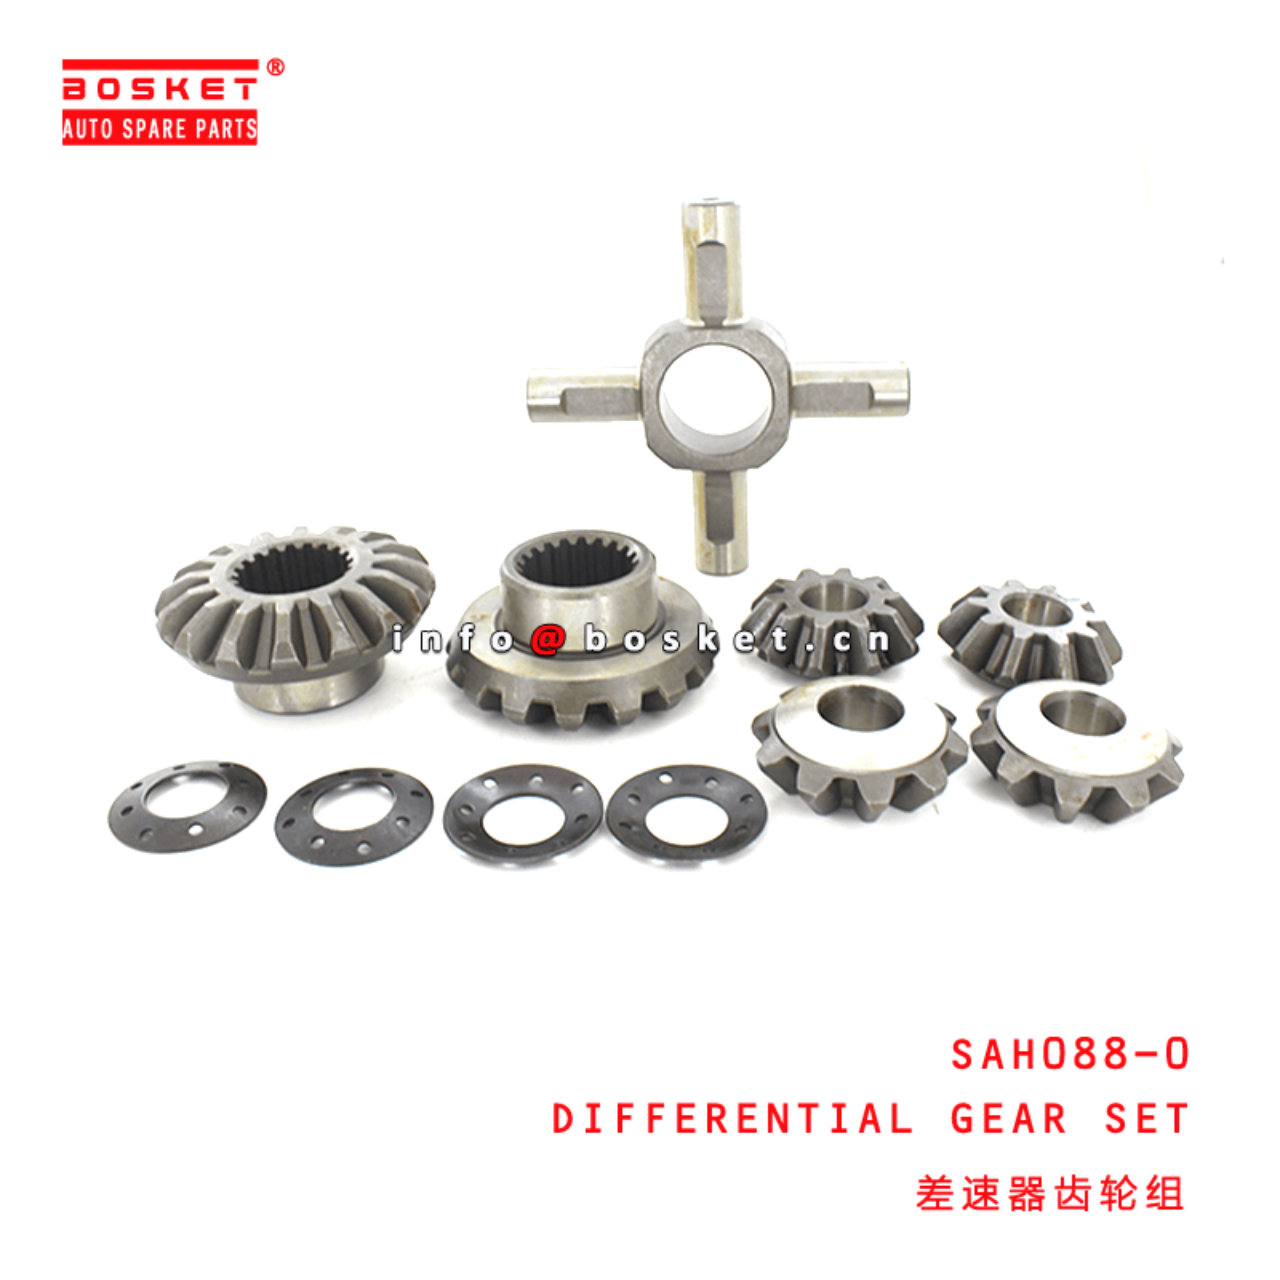 SAH088-0 Differential Gear Set Suitable for ISUZU